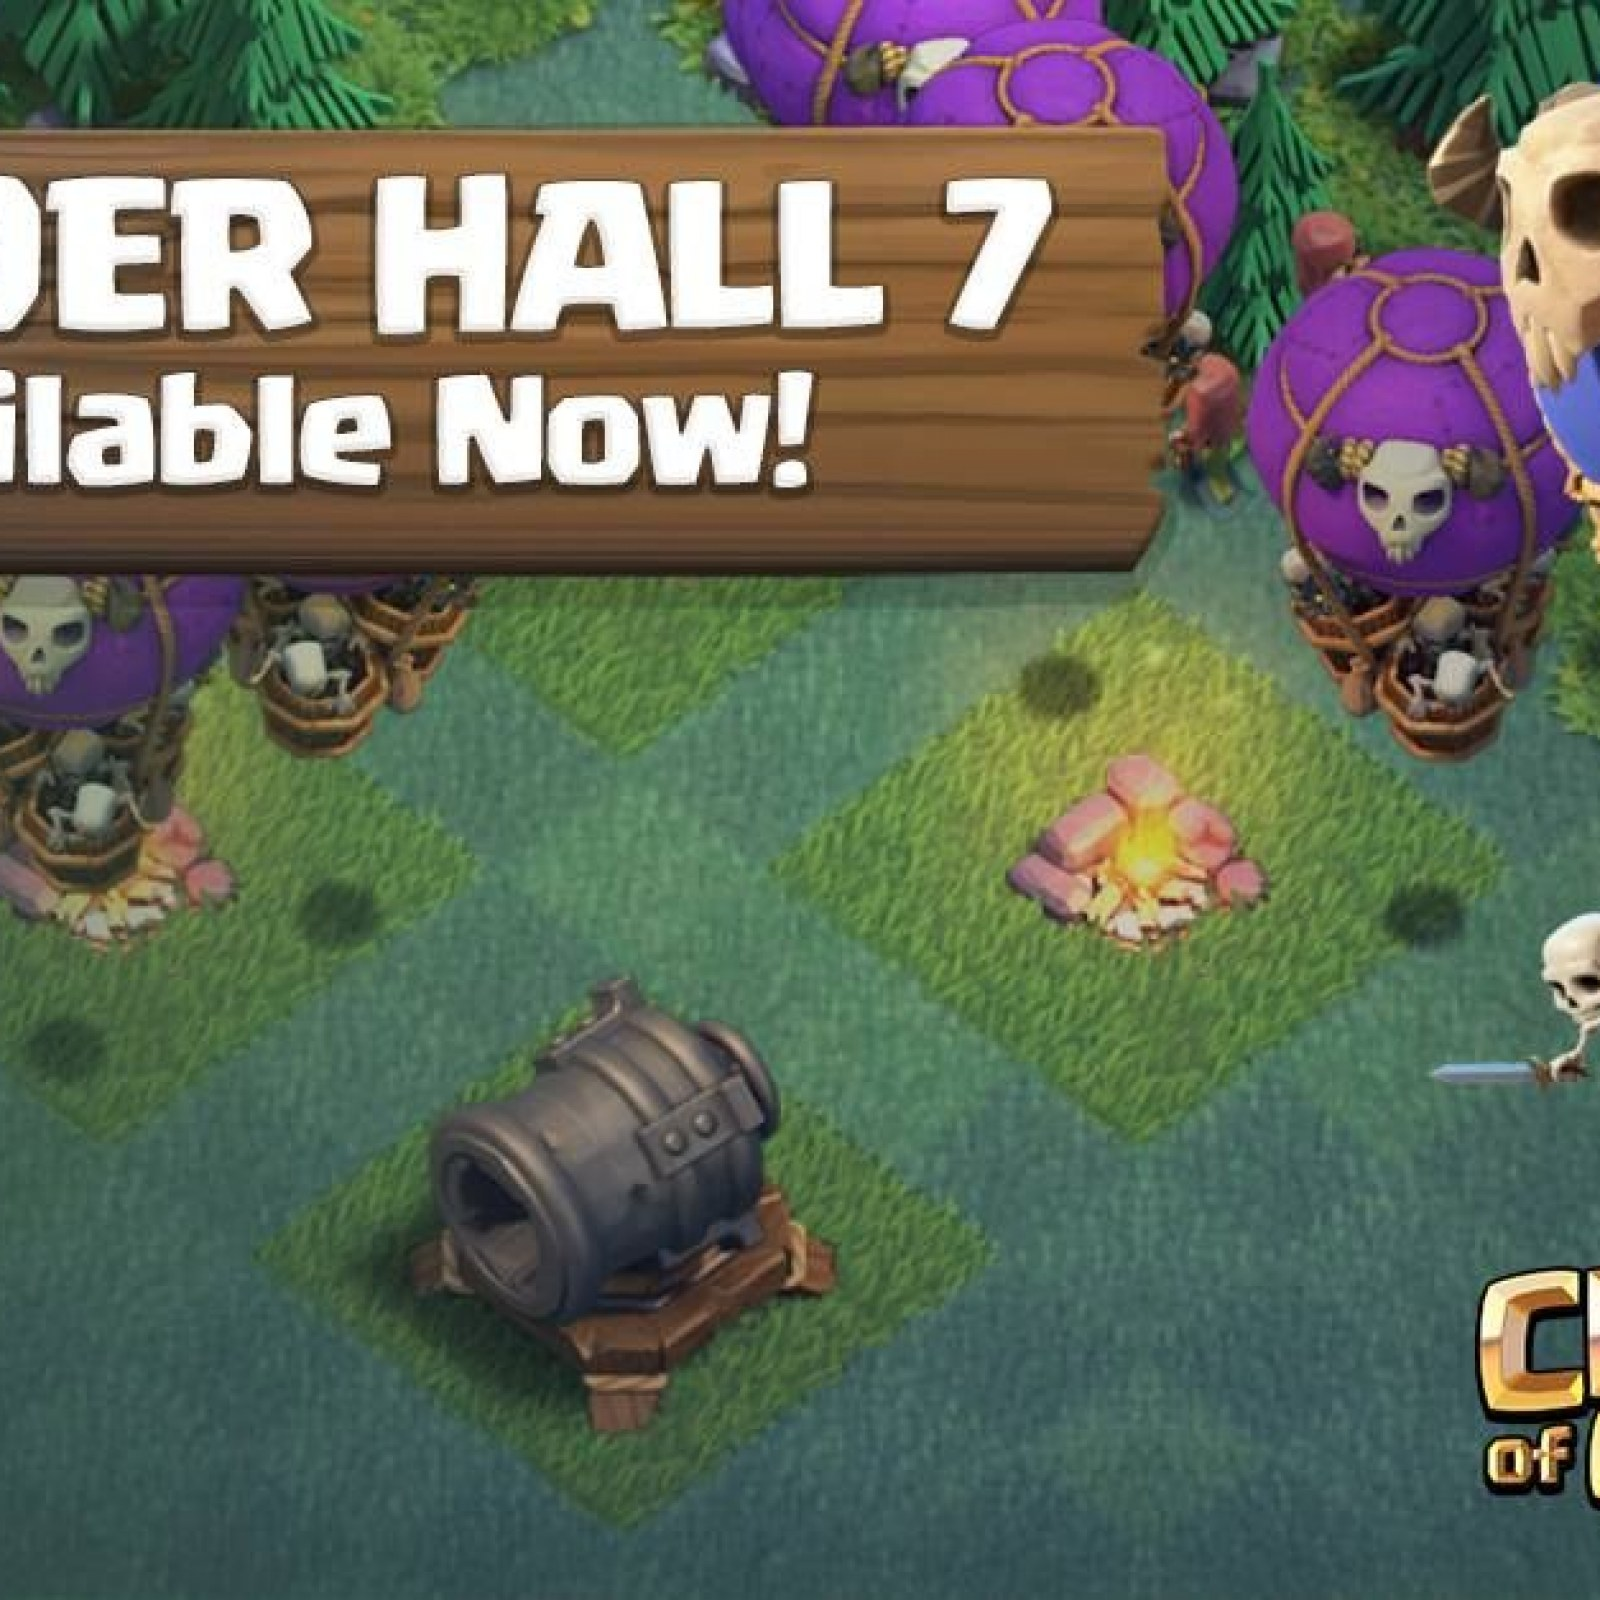 Clash Of Clans' Builder Hall 8 Adds New Troops in Spring